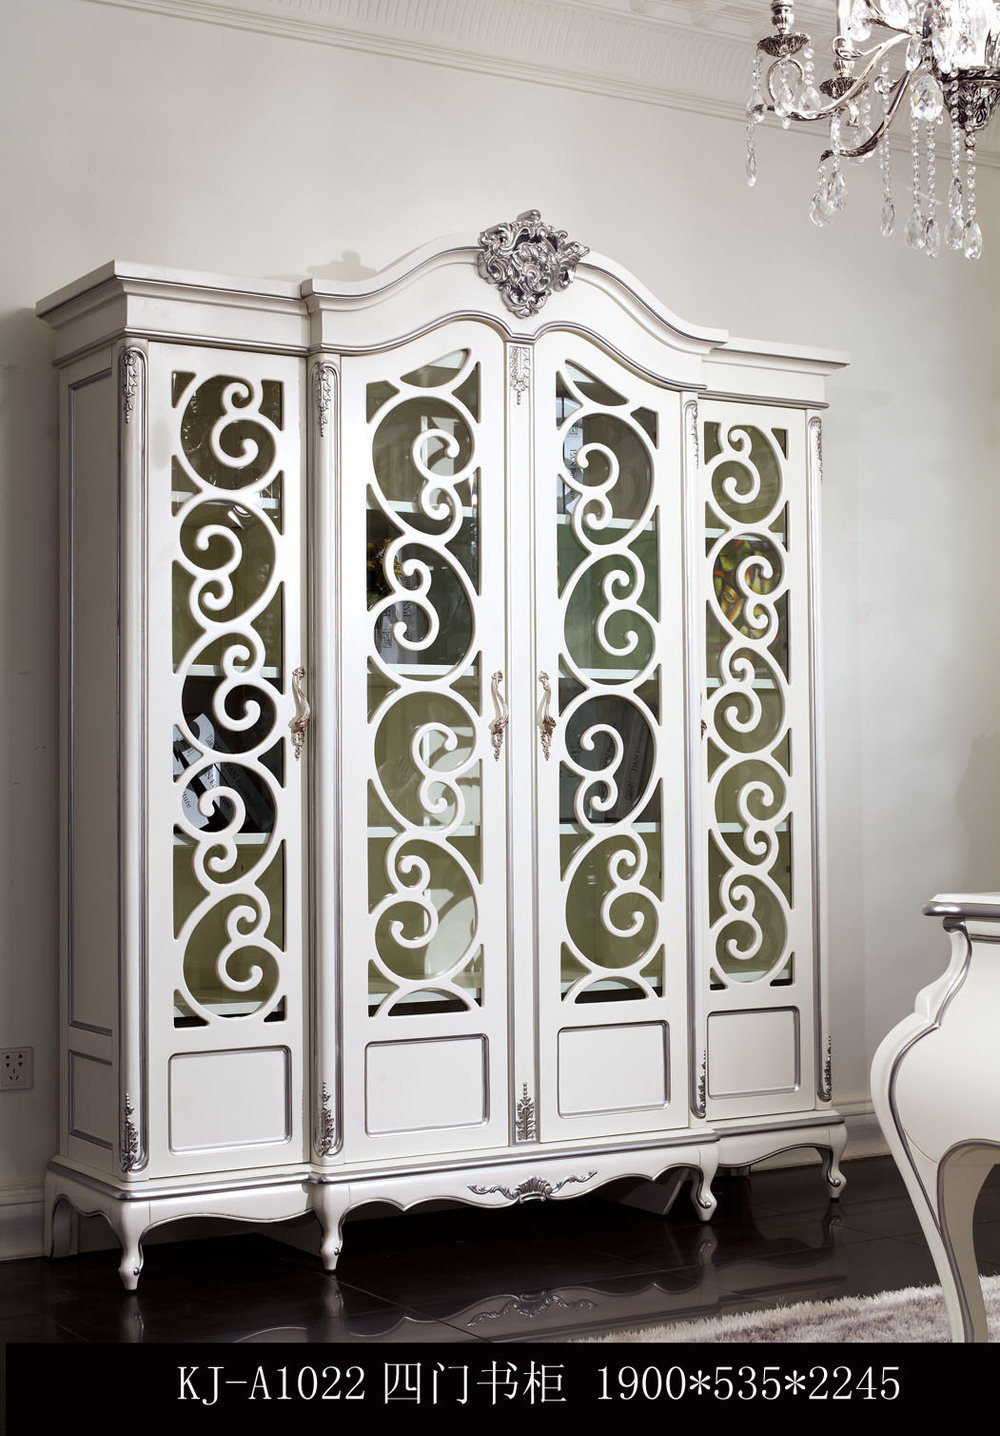 French baroque furniture - Palace Furniture French Baroque Furniture Super King Size Fabric Bedroom Sets